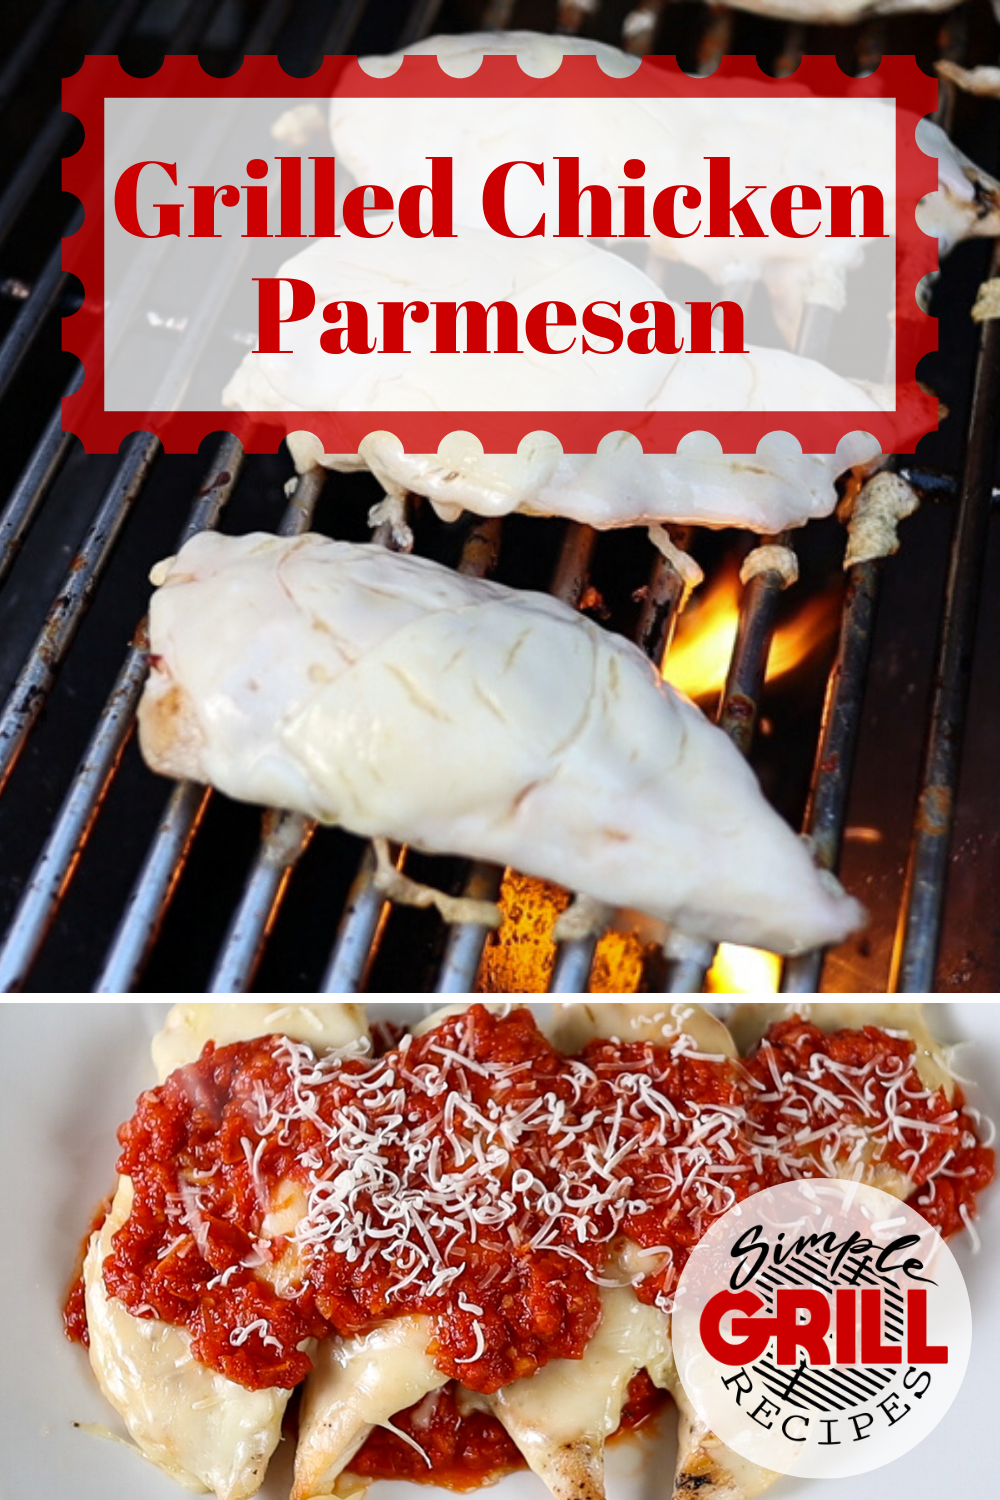 You're going to love this grilled chicken parmesan recipe. It is so simple and has such great flavor, no need to do a breaded chicken. #grilledchickenparmesan